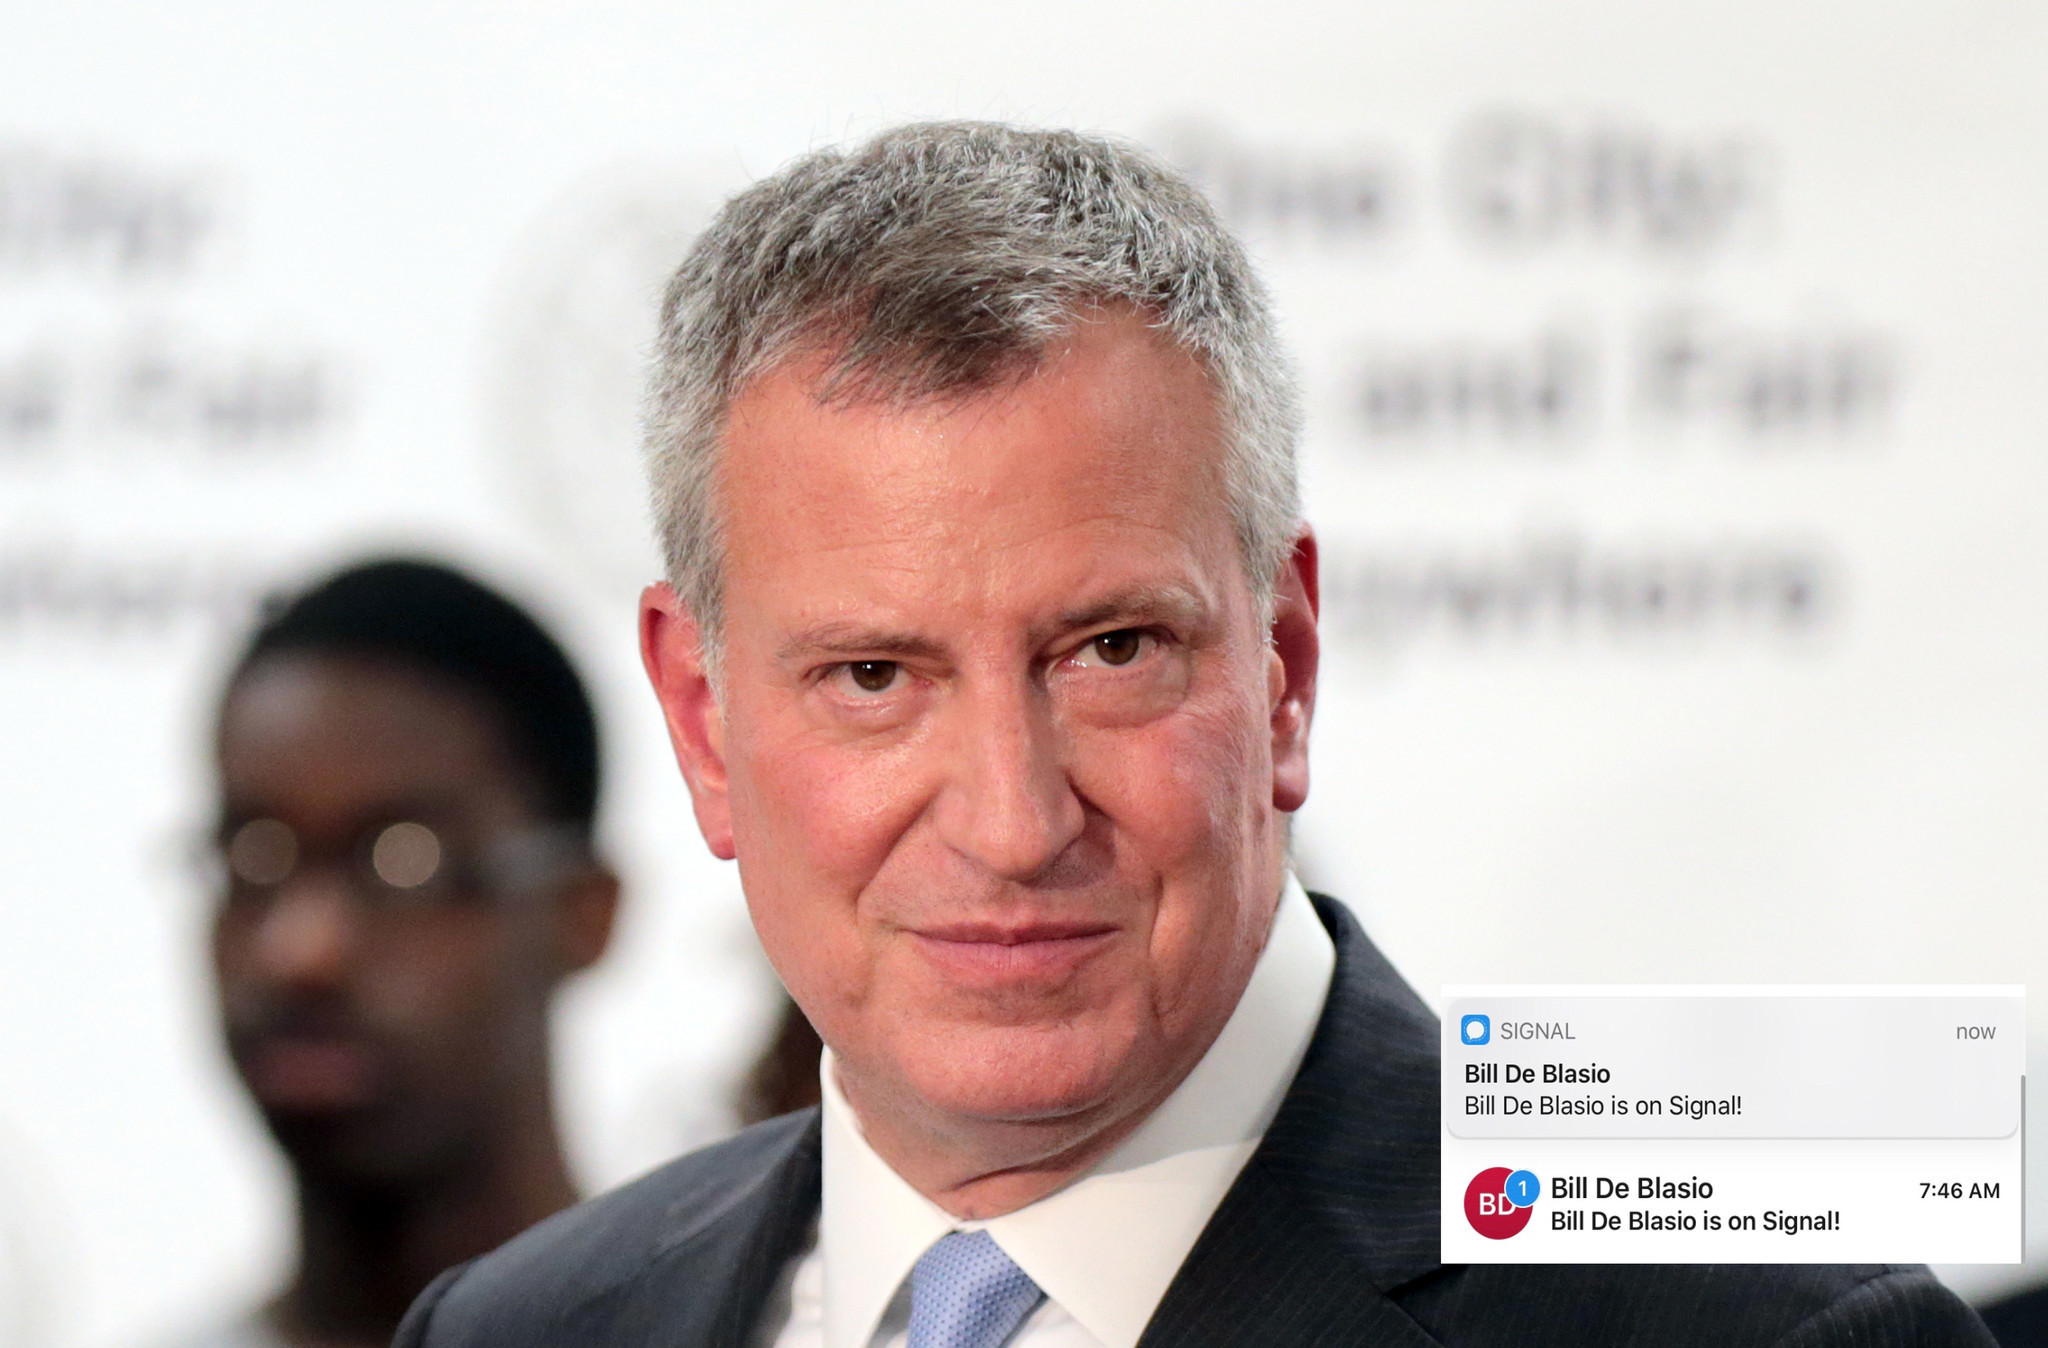 Mayor de Blasio joins encrypted messaging app Signal, raising legal and ethical questions